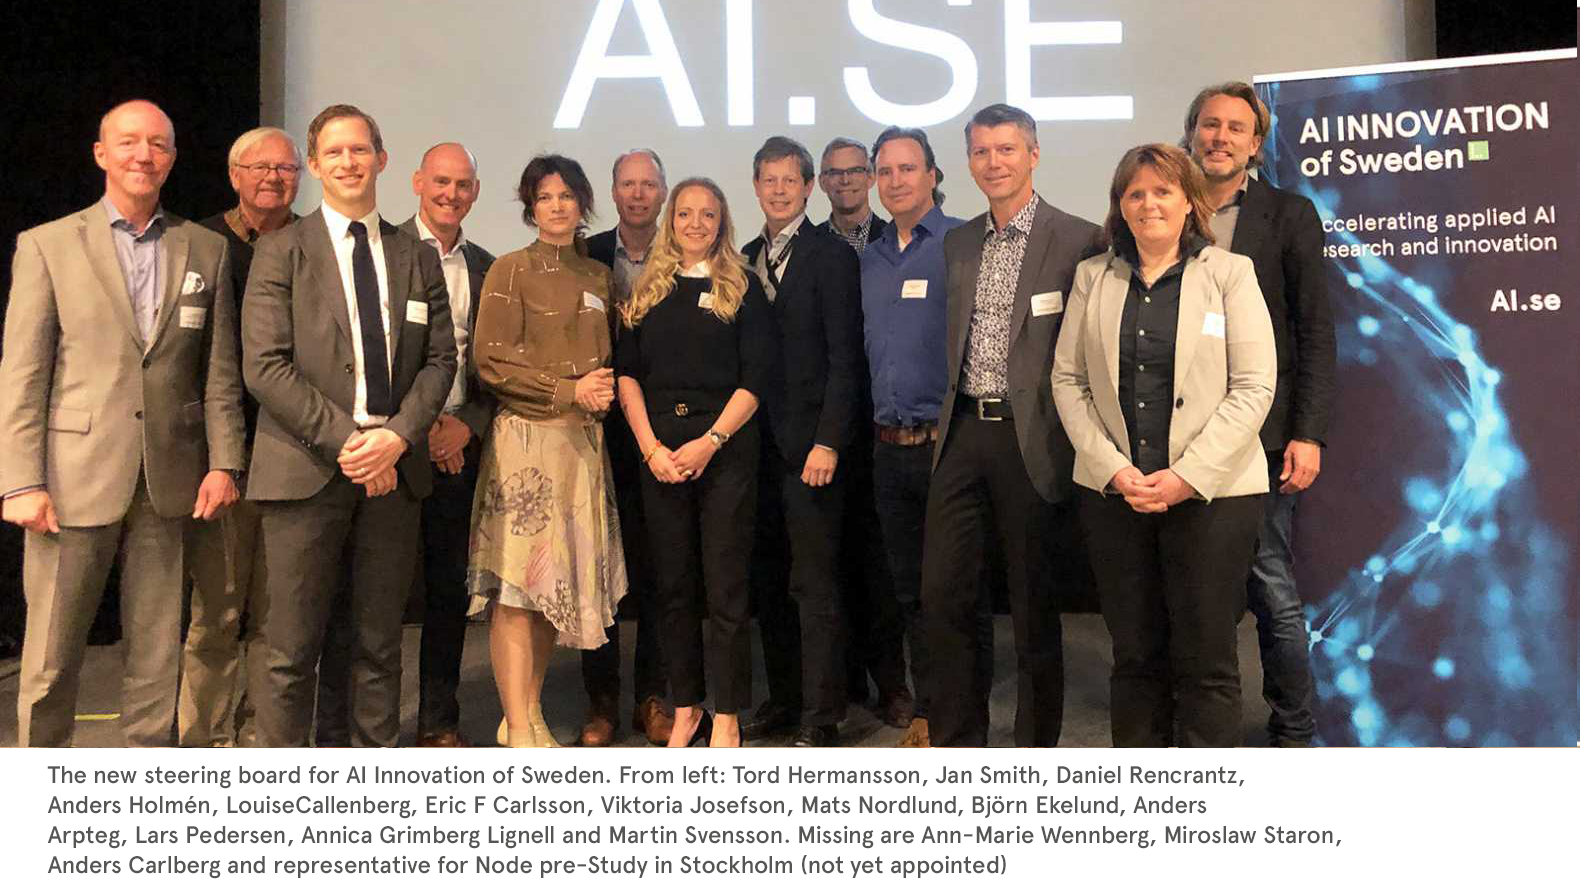 new board of Ai innovation of Sweden